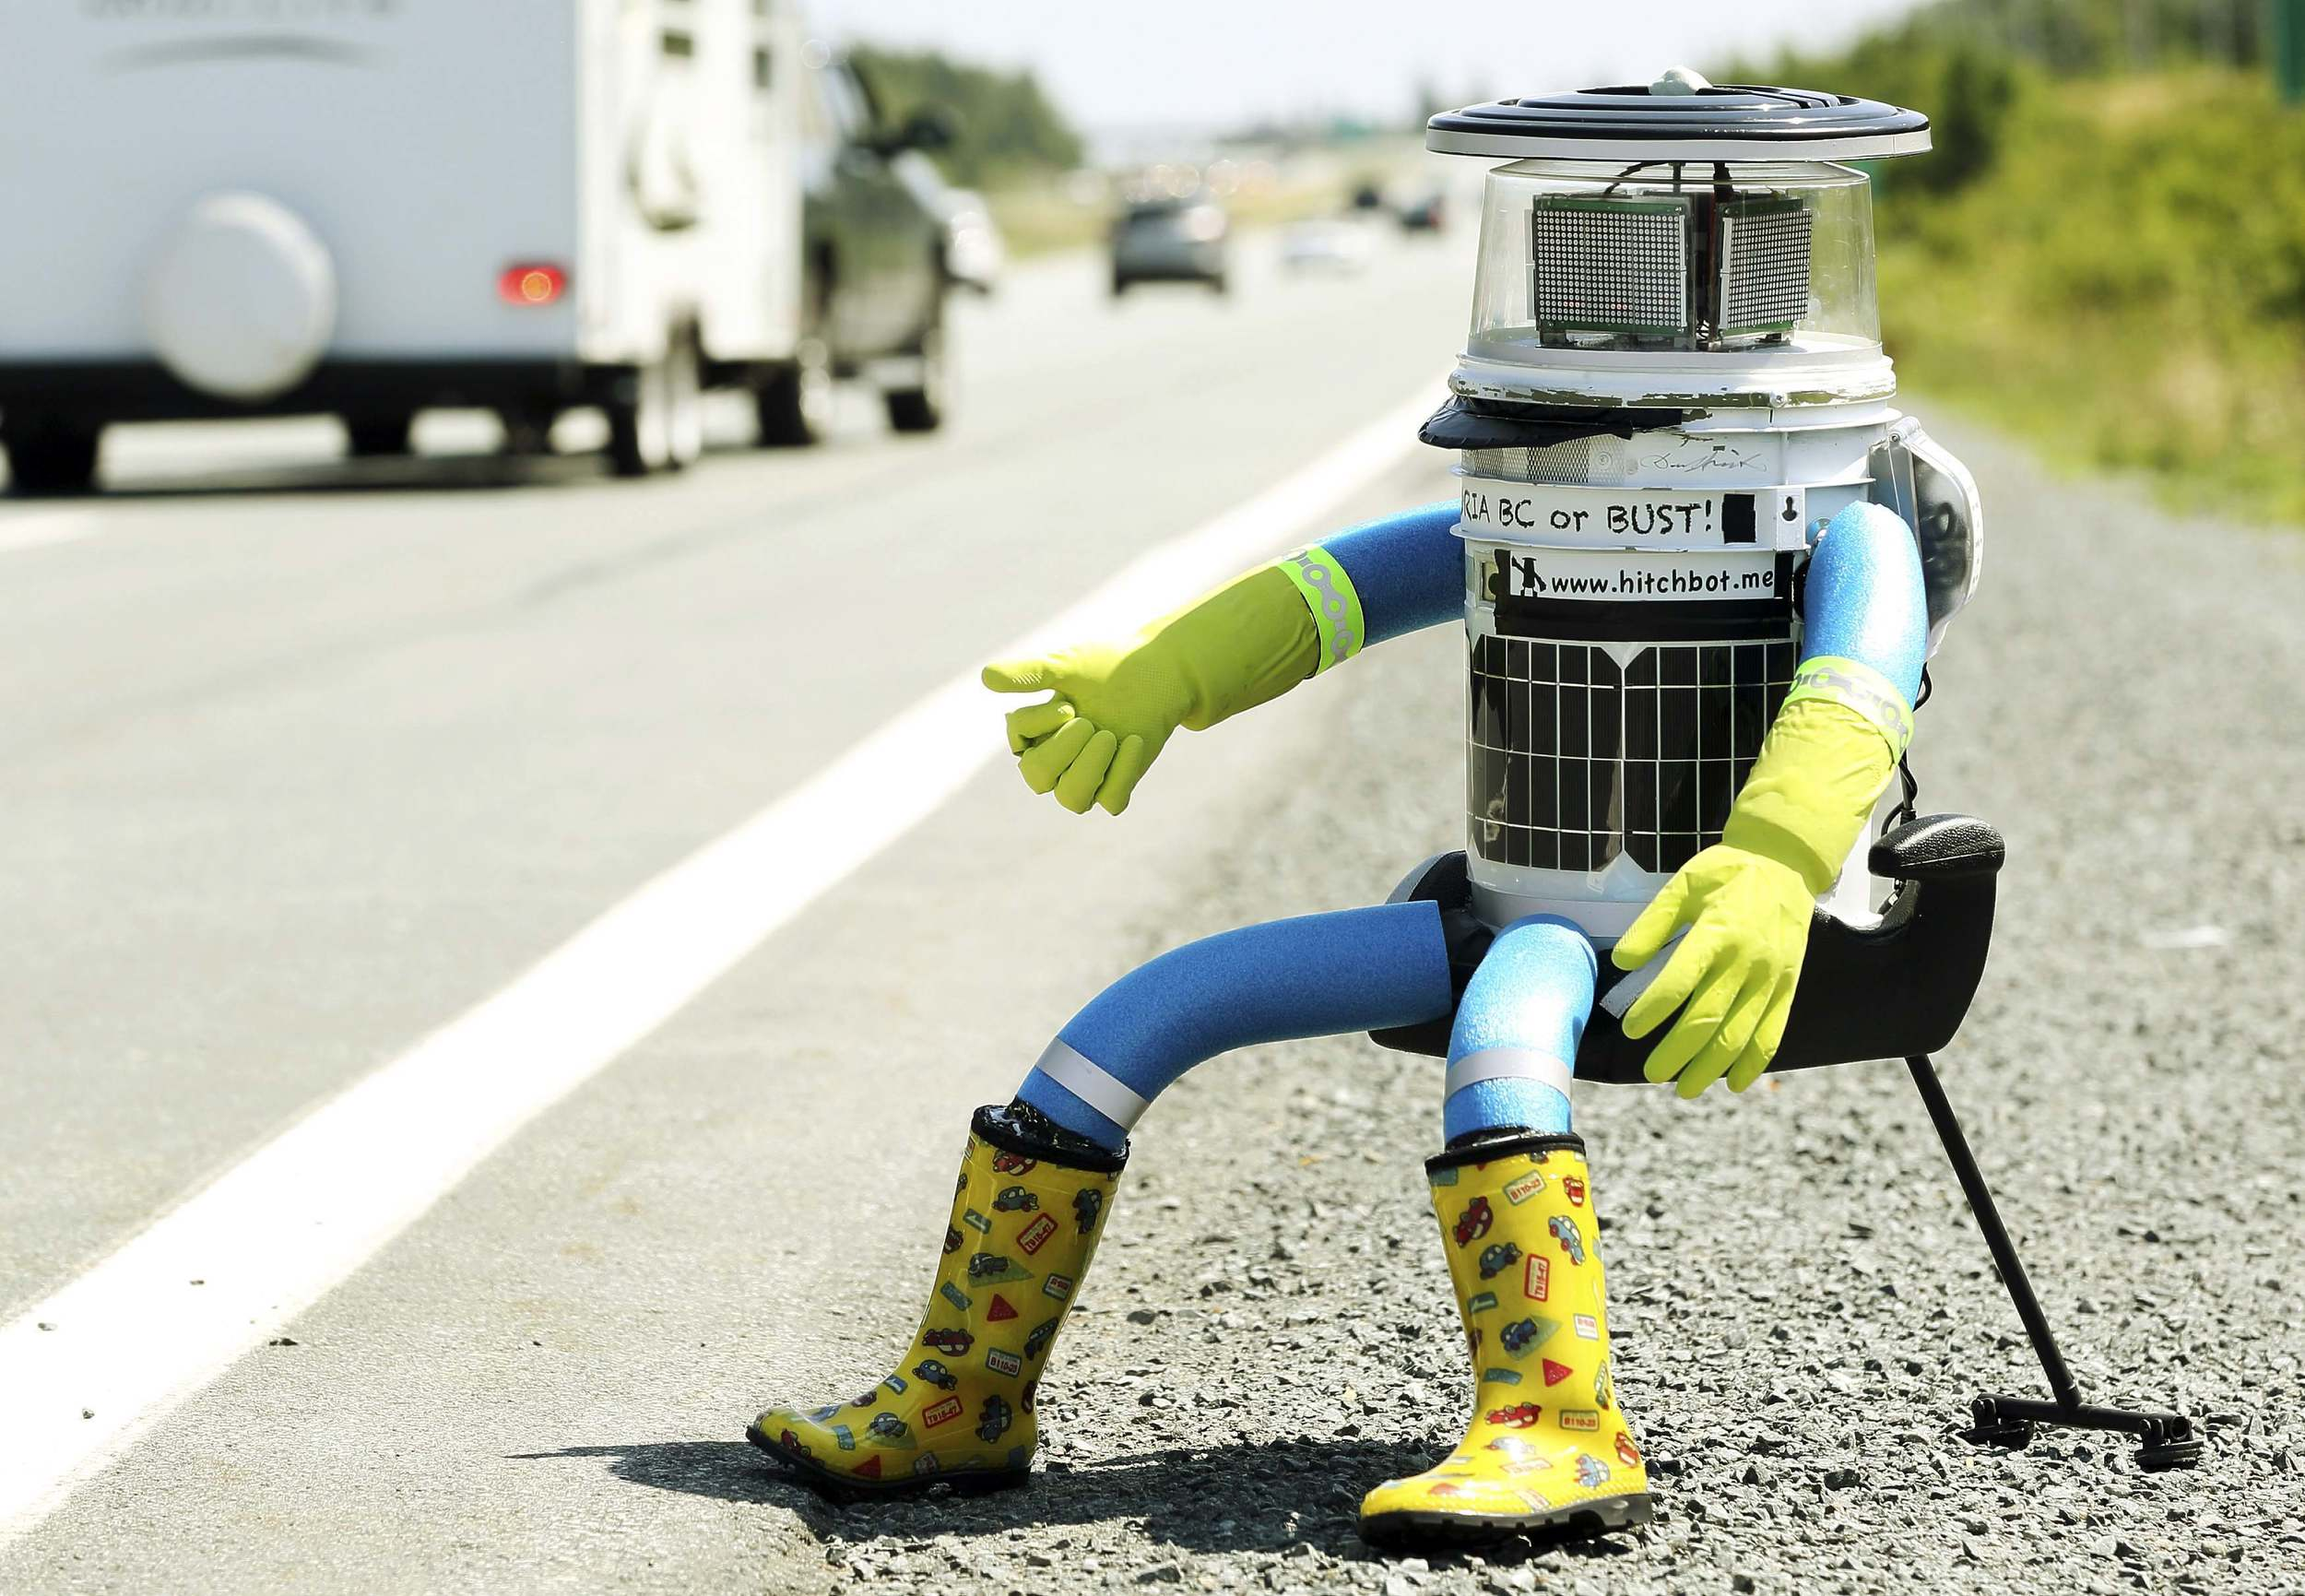 HitchBOT doing what he does best, hitching!